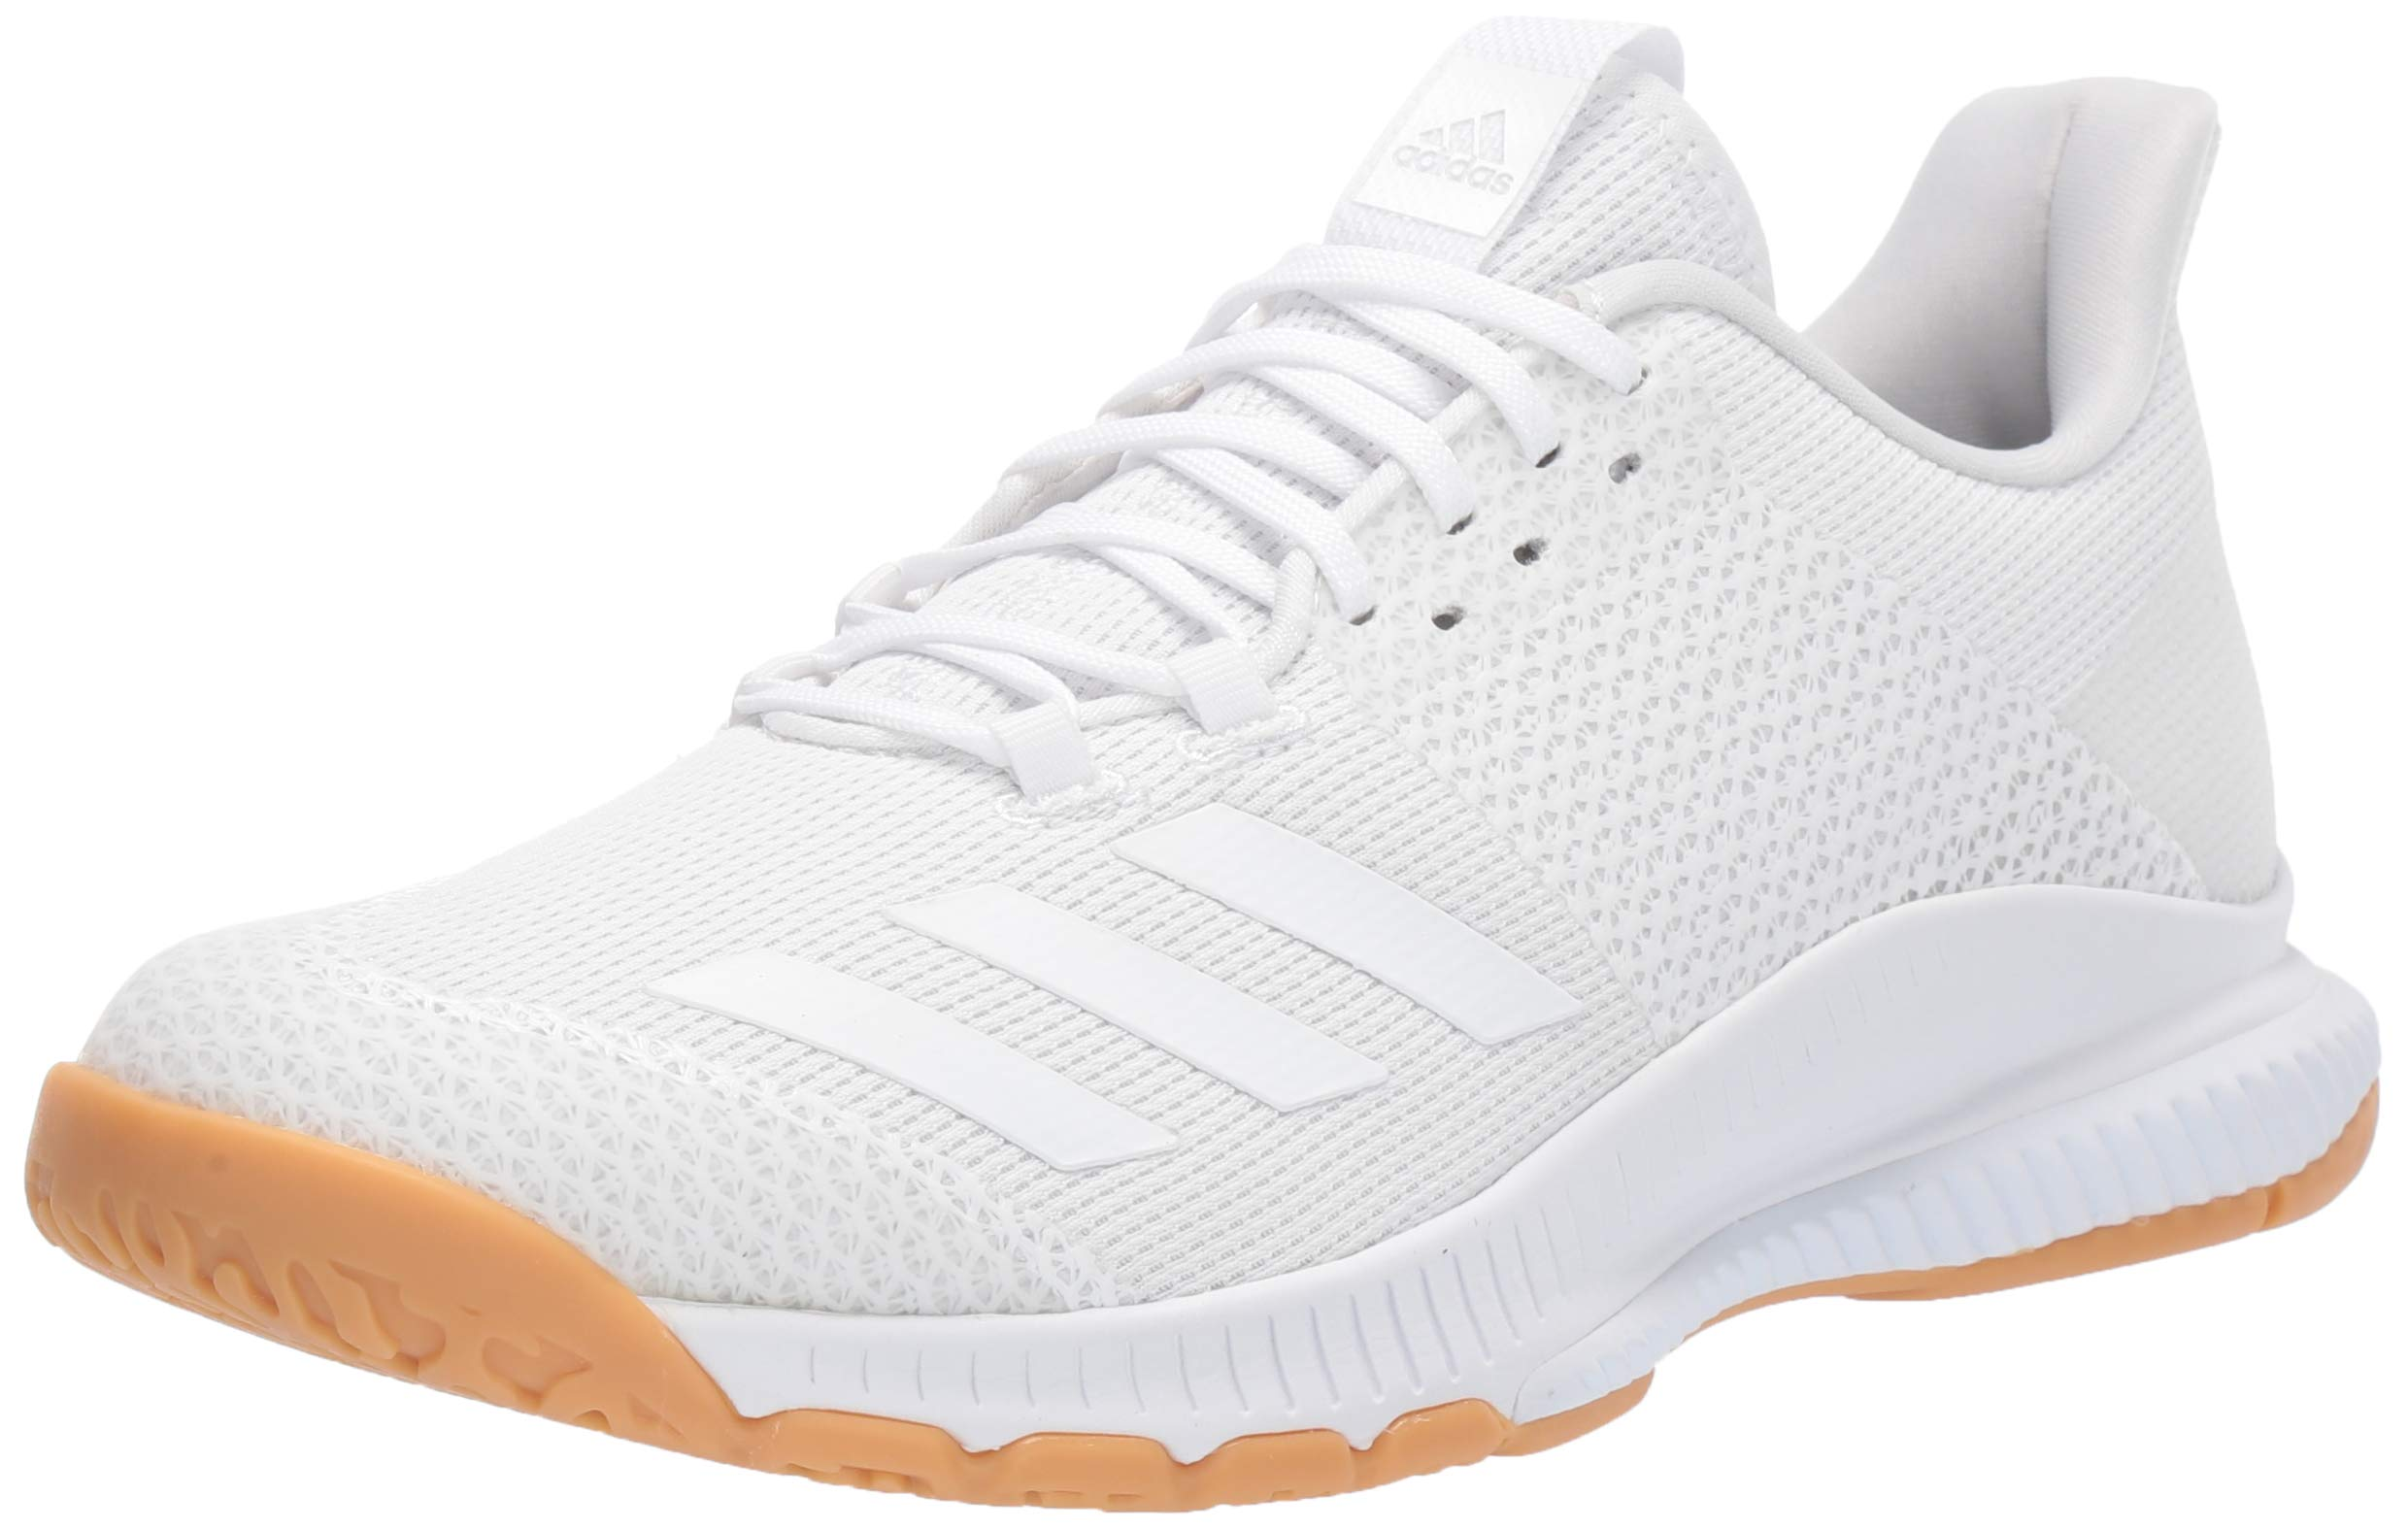 adidas Women's Crazyflight Bounce 3 Volleyball Shoe, White/Gum, 9 M US by adidas